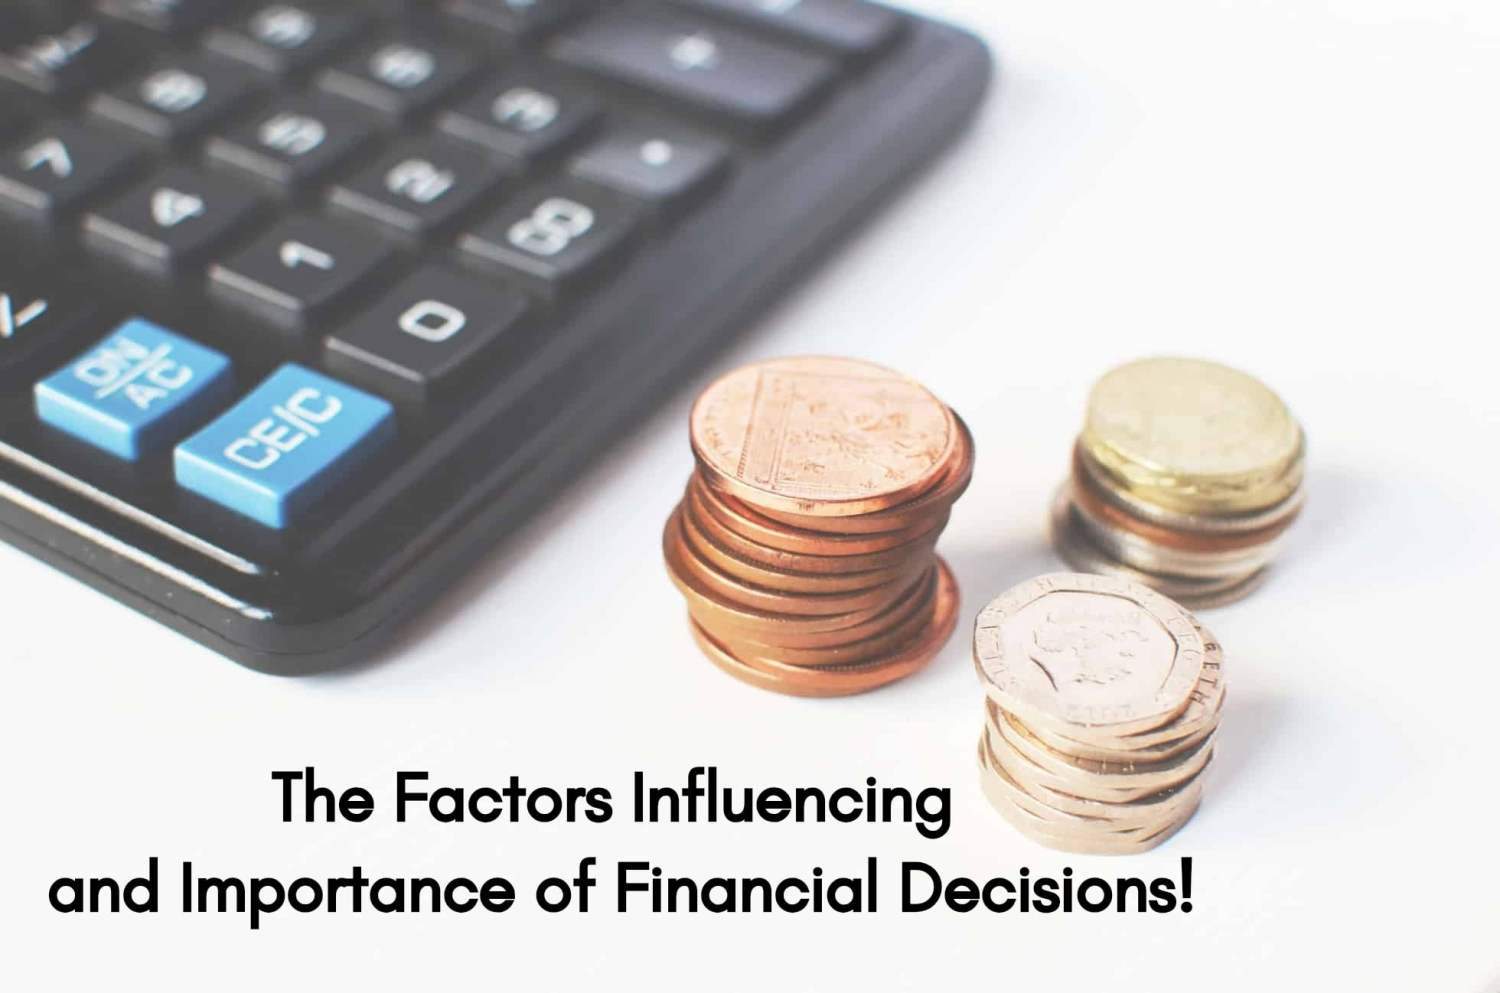 The Factors Influencing and Importance of Financial Decisions - ilearnlot